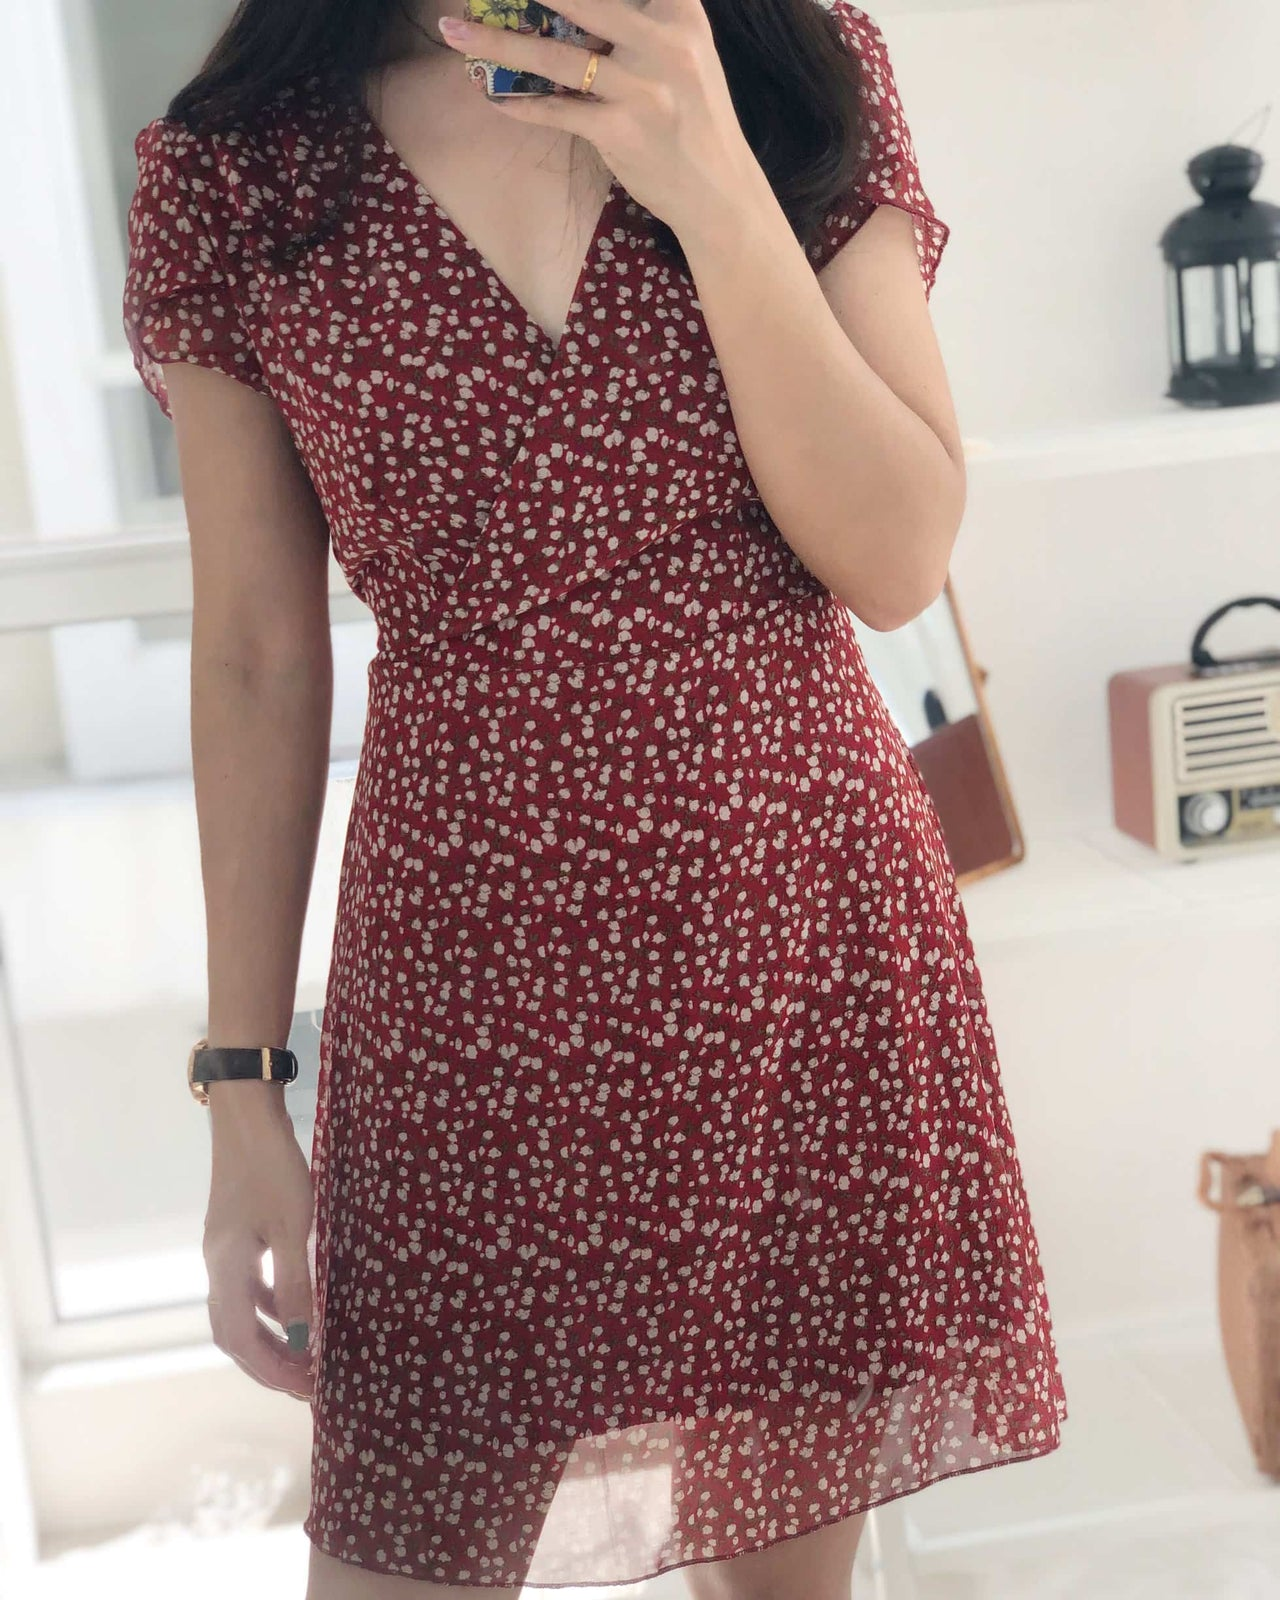 Daisy Maroon Floral Dress - Lovely Madness